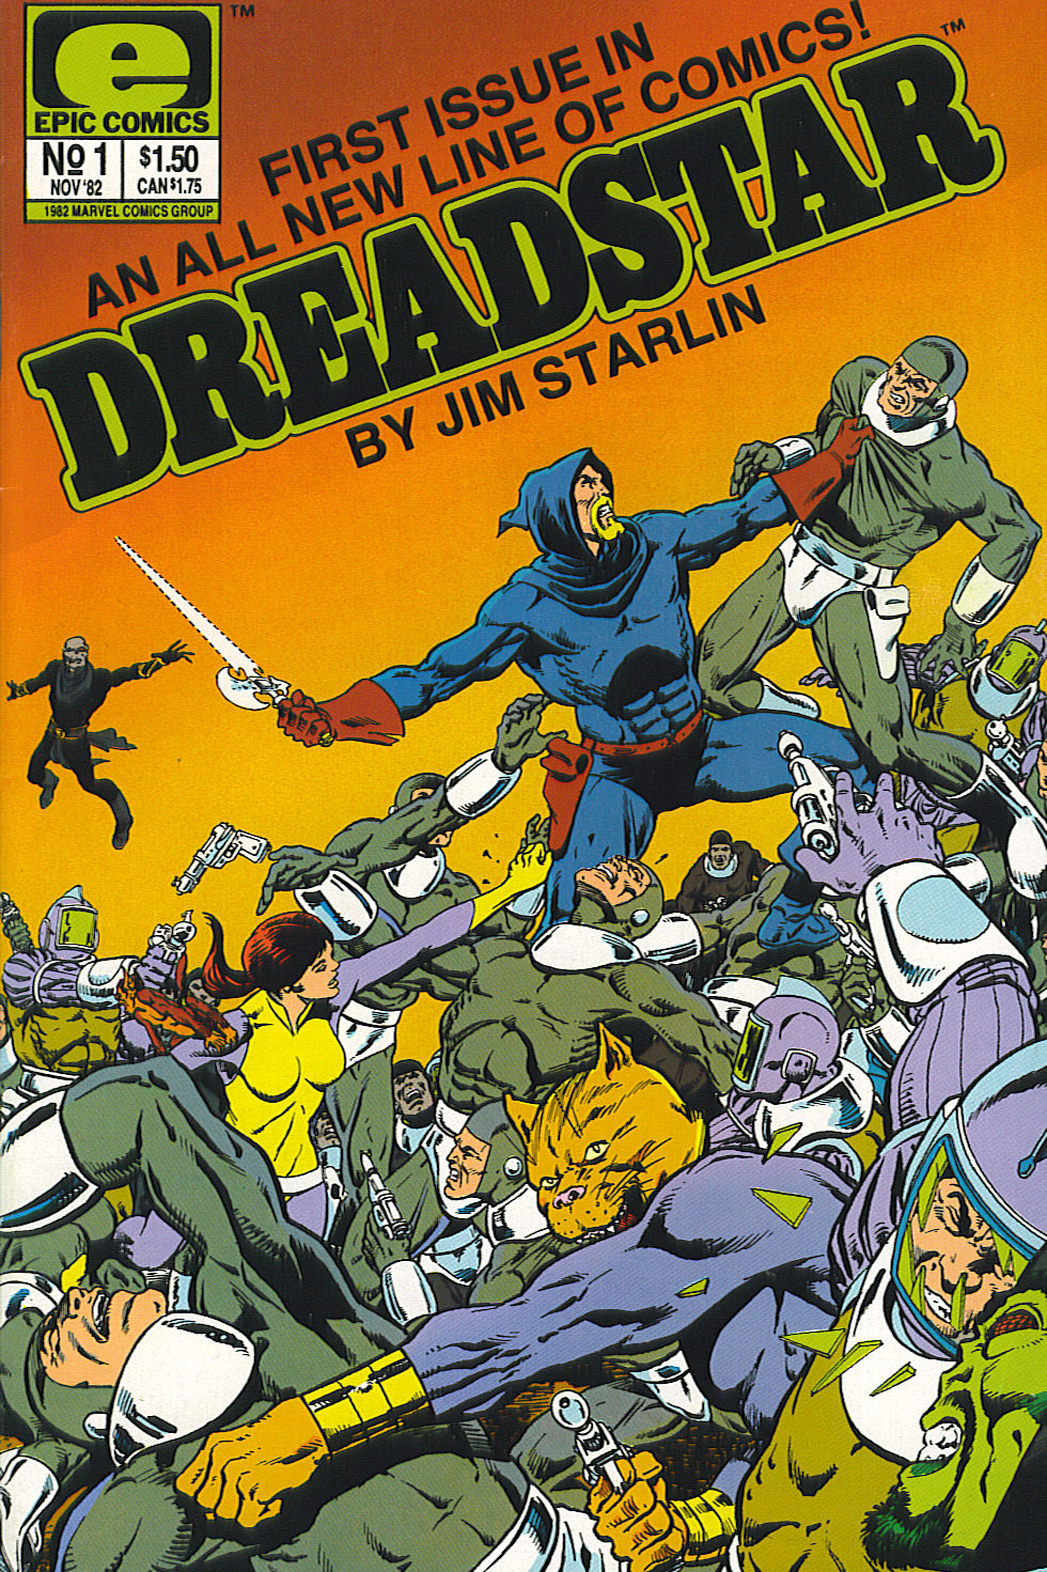 Dreadstar #1 Cover - P 2014